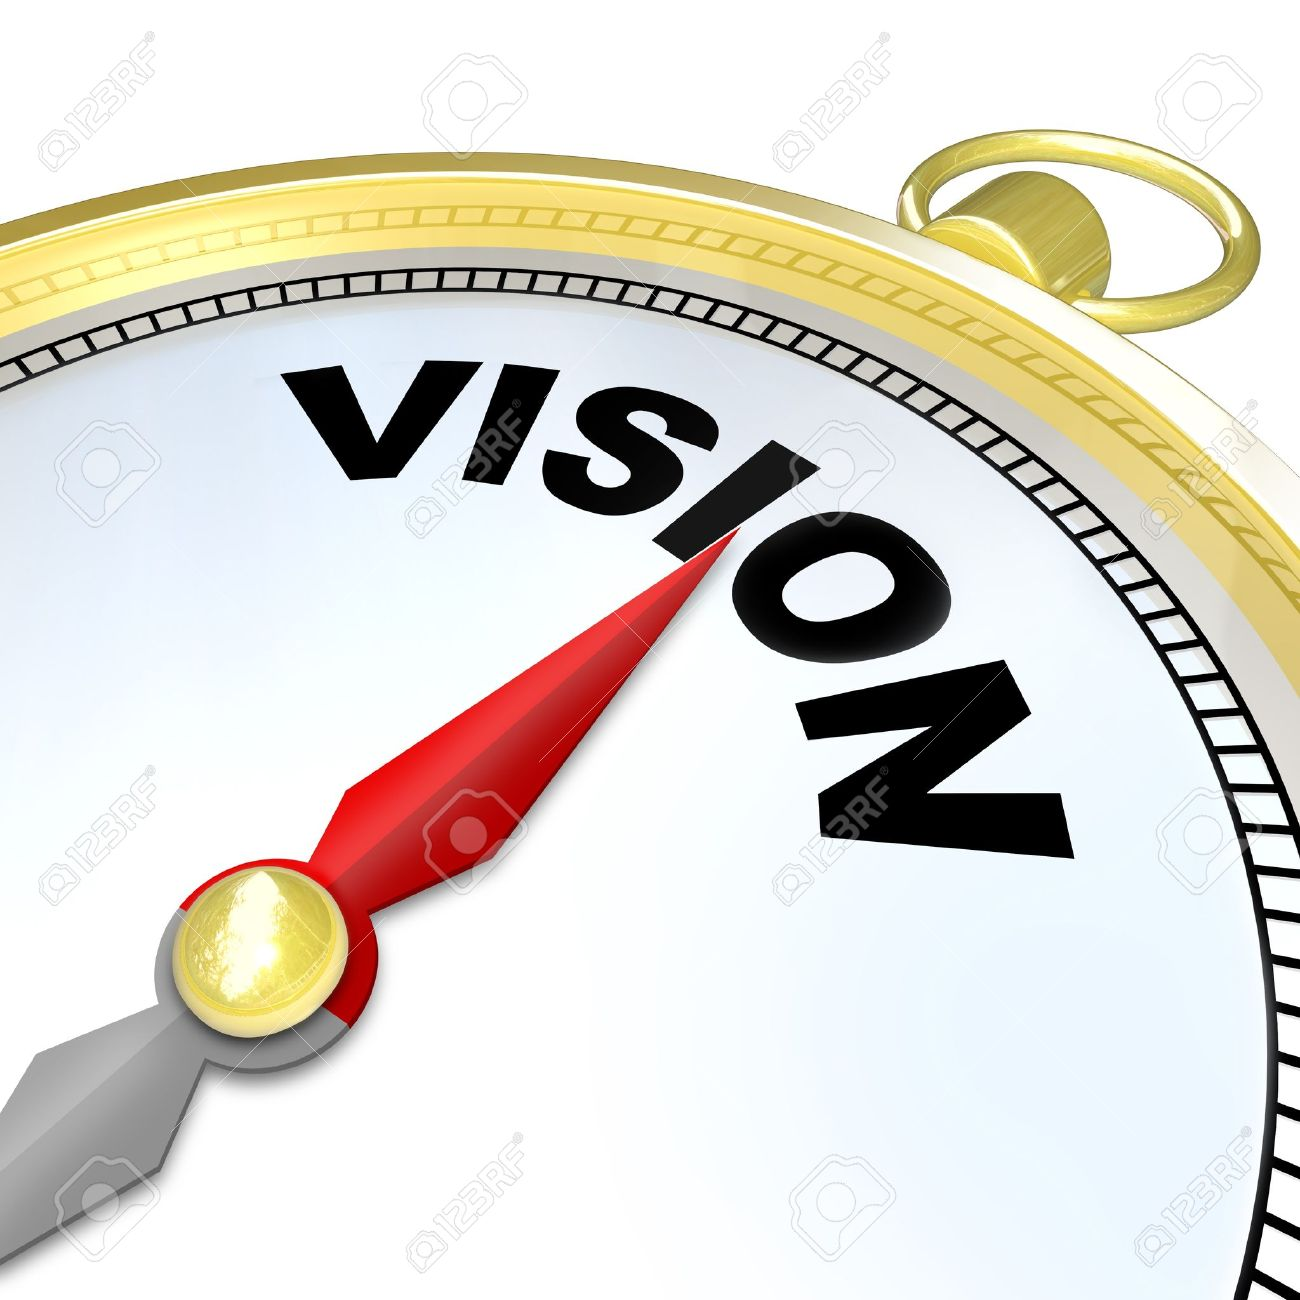 The needle on a golden compass points to the word Vision to give you clear direction, strategy, leadership, and a plan for future success Stock Photo - 17674380